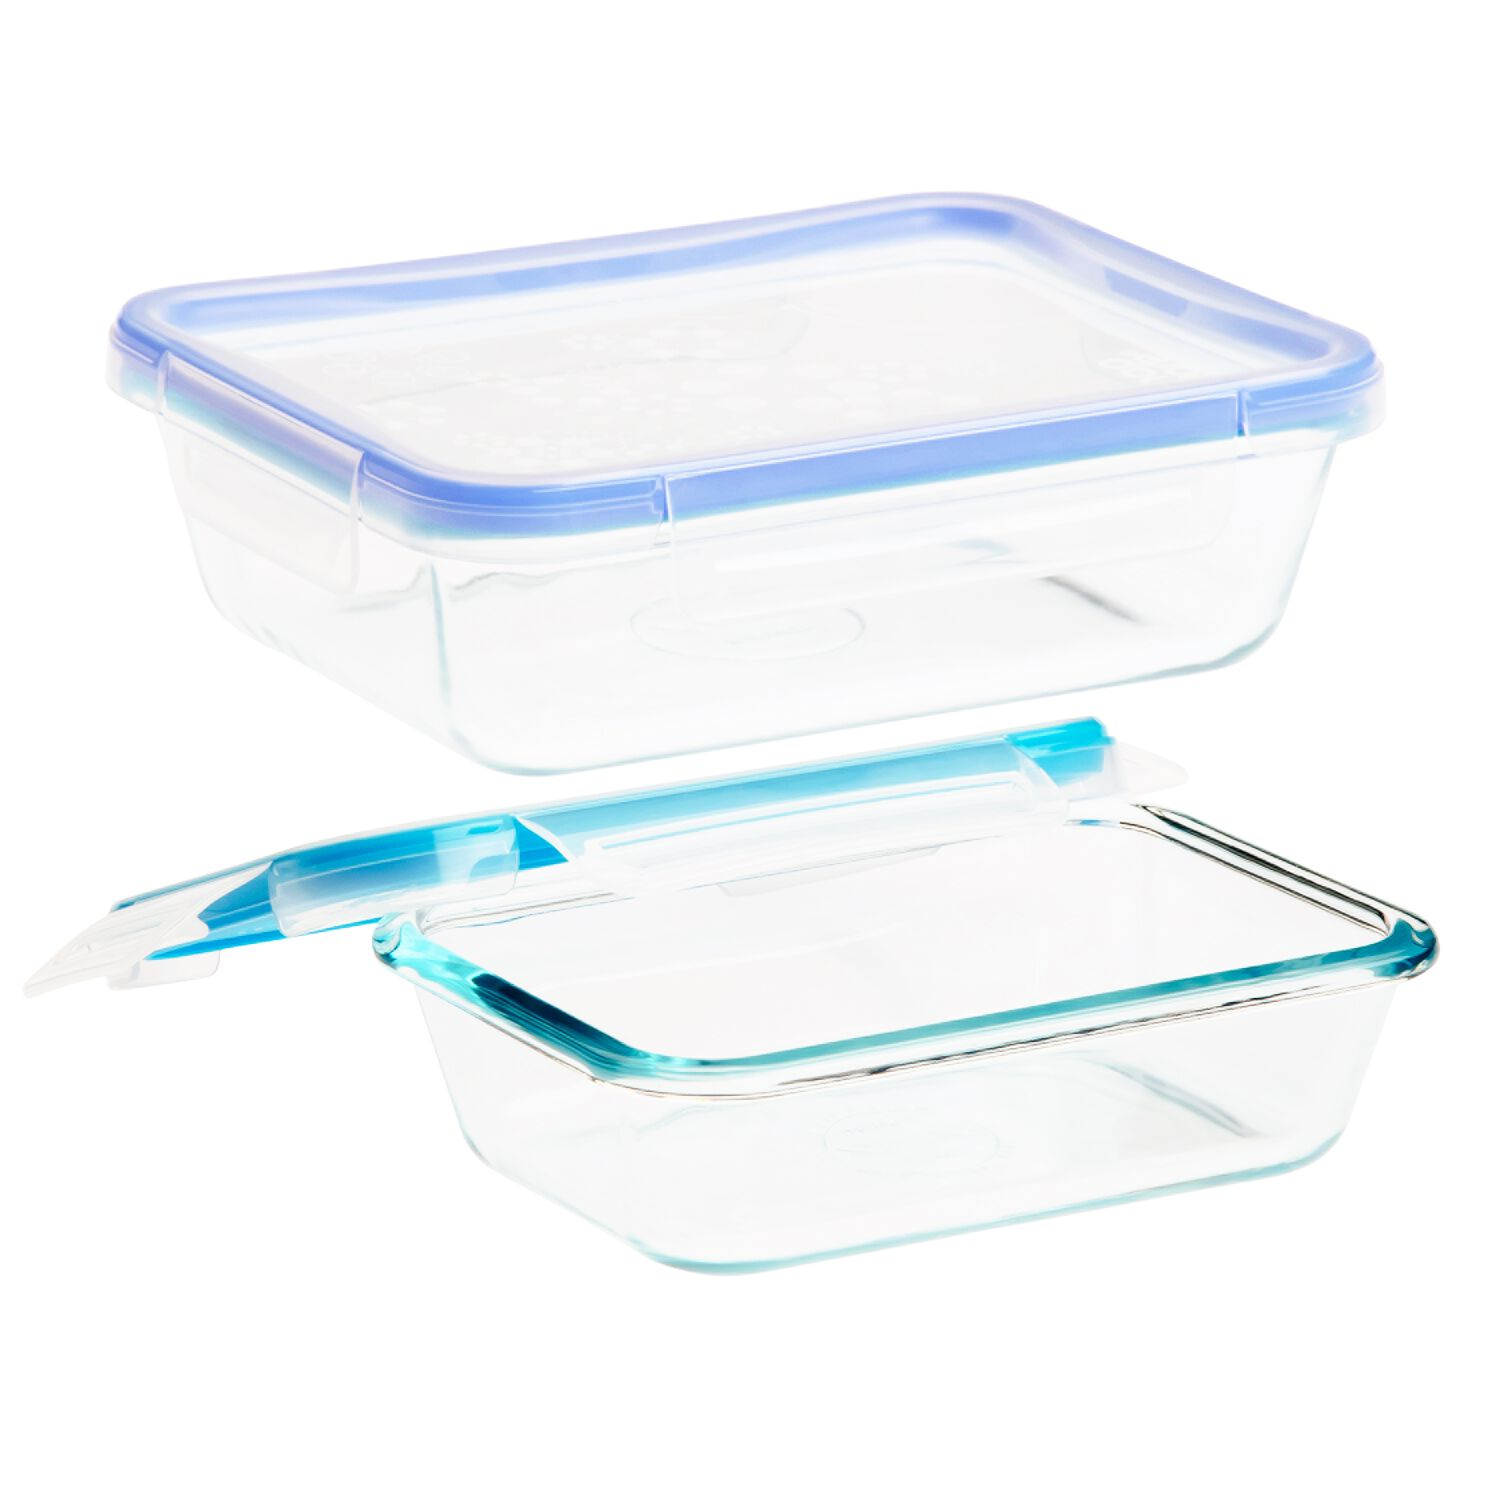 Snapware Leakproof Pyrex Glass Food Keeper Set. Snapware Airtight & Leakproof Pyrex Glass Food Keeper Set (Piece Set) CLICK FOR BEST PRICE. Unlike the previous set these Pyrex containers have lids that fasten with a clip and they are advertised as being % airtight and leakproof making them suitable for use on the go.